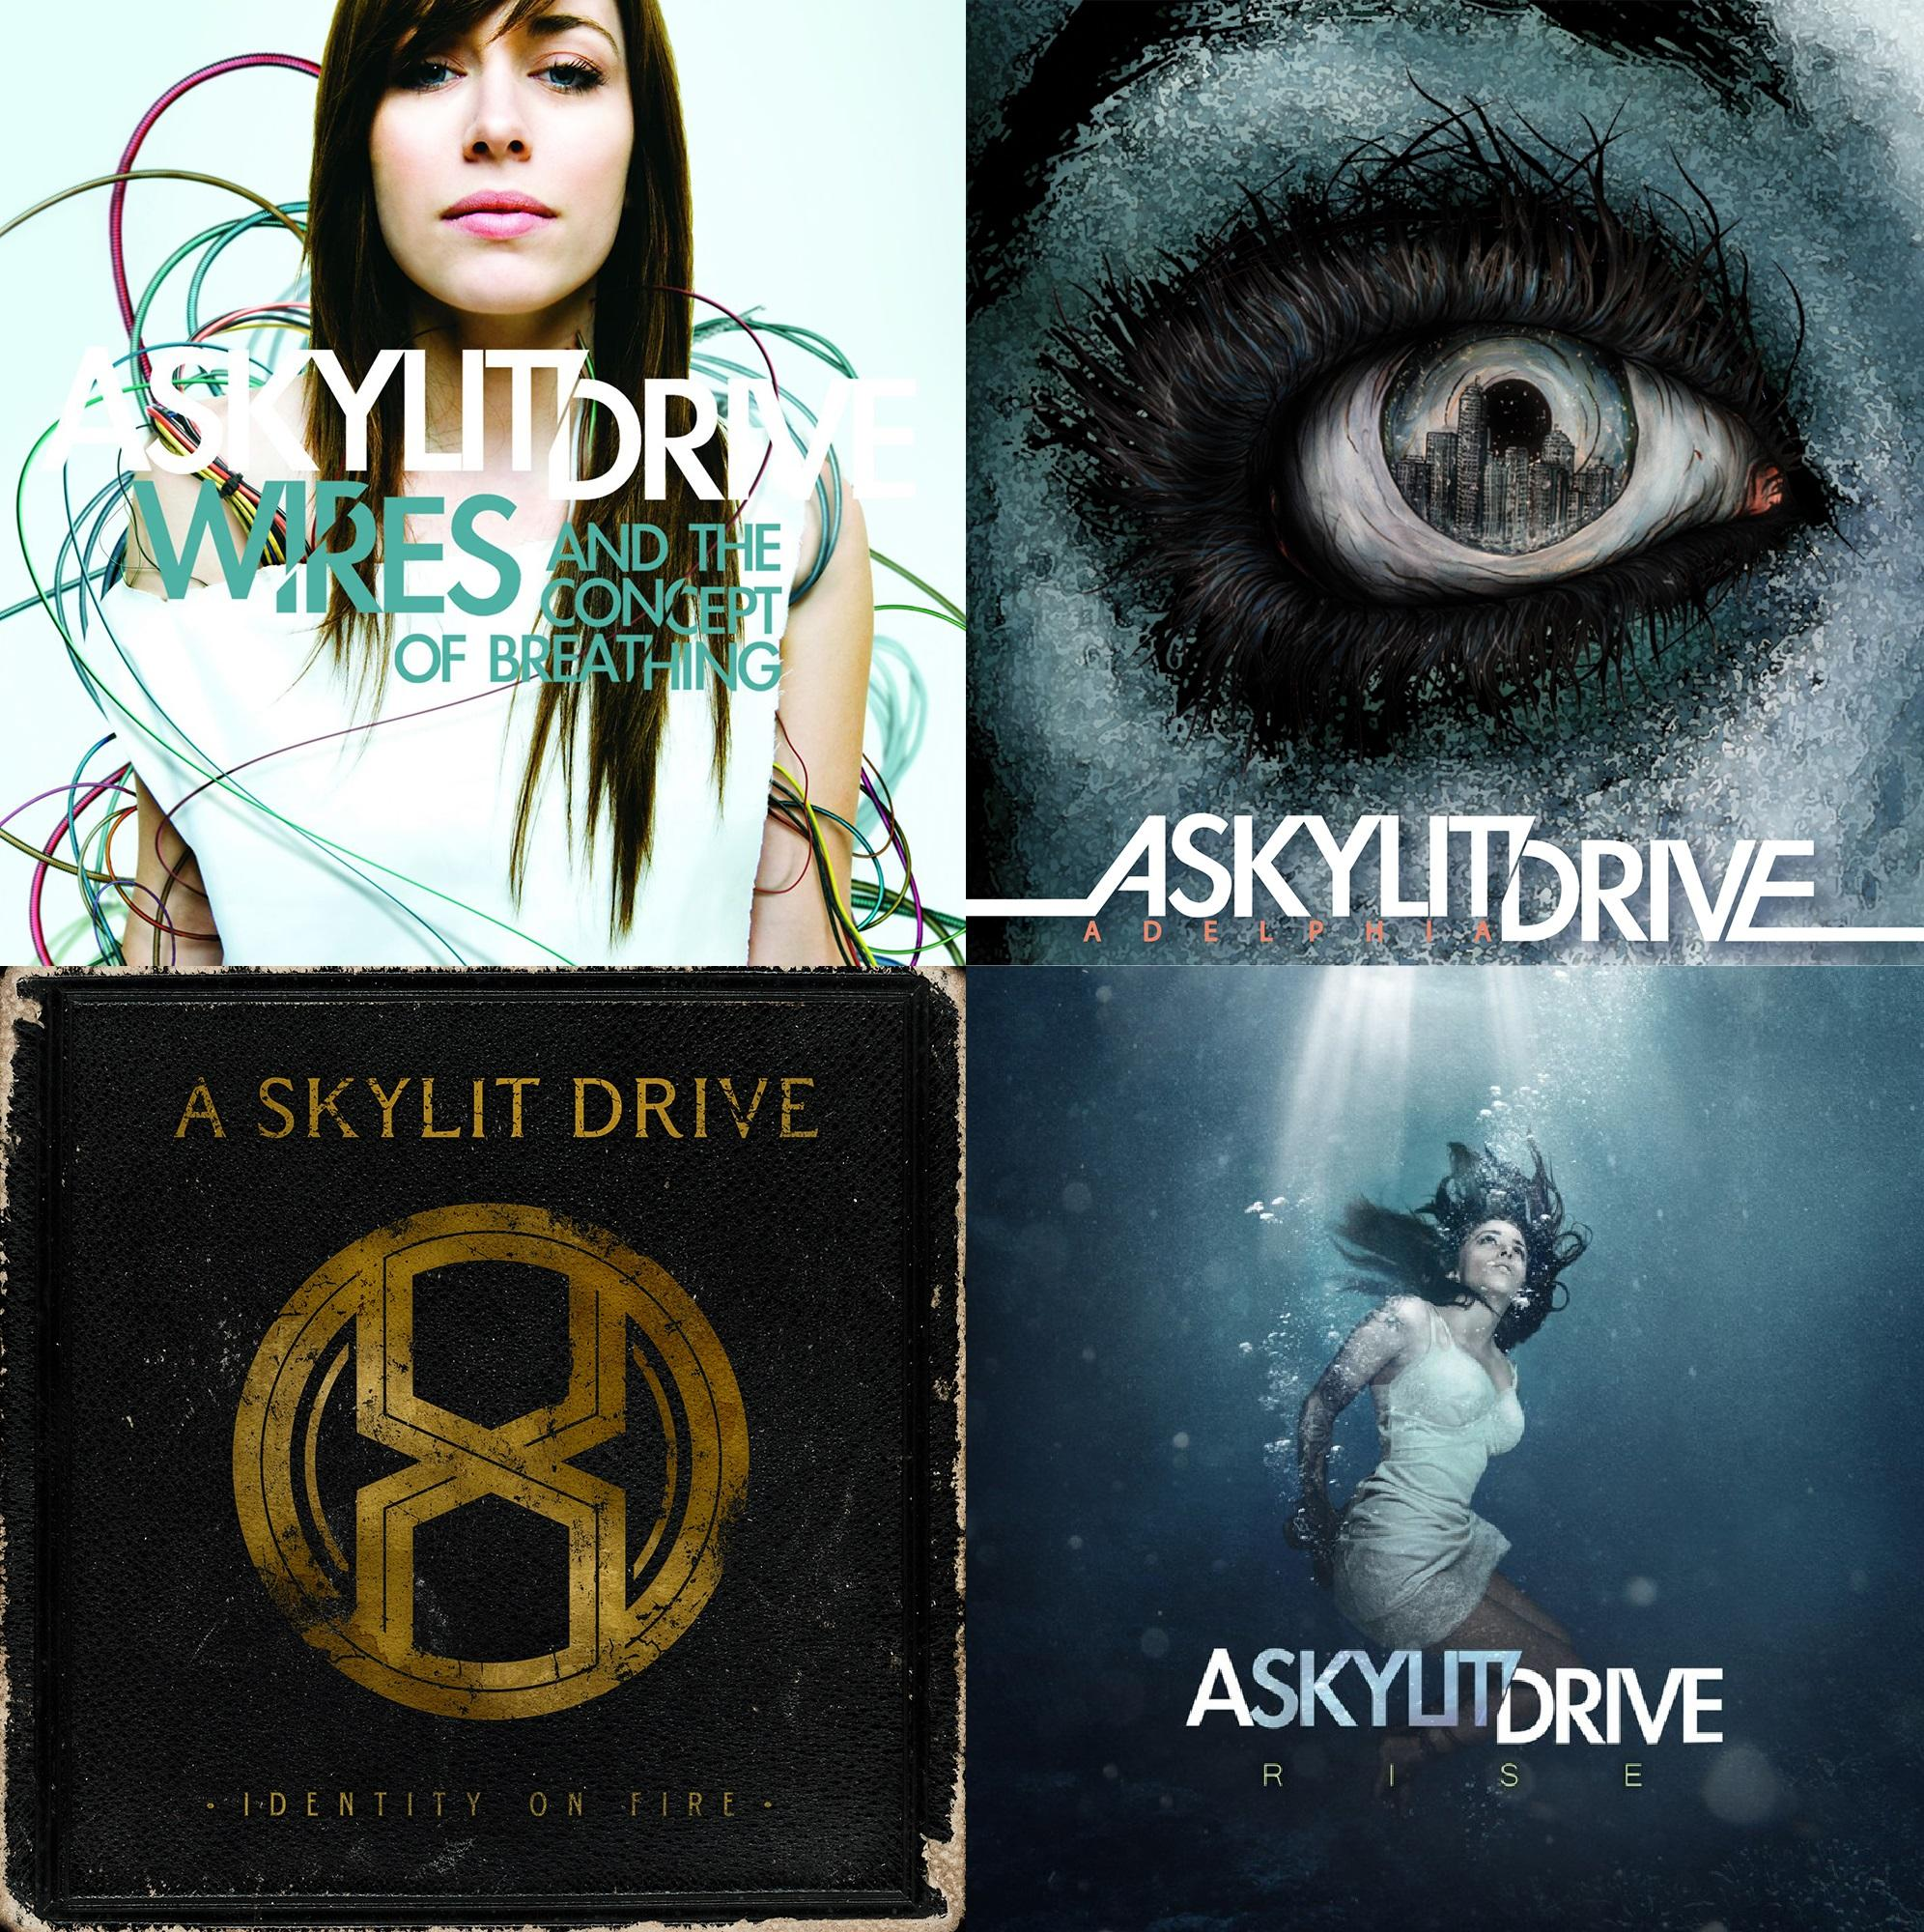 a skylit drive full album mp3